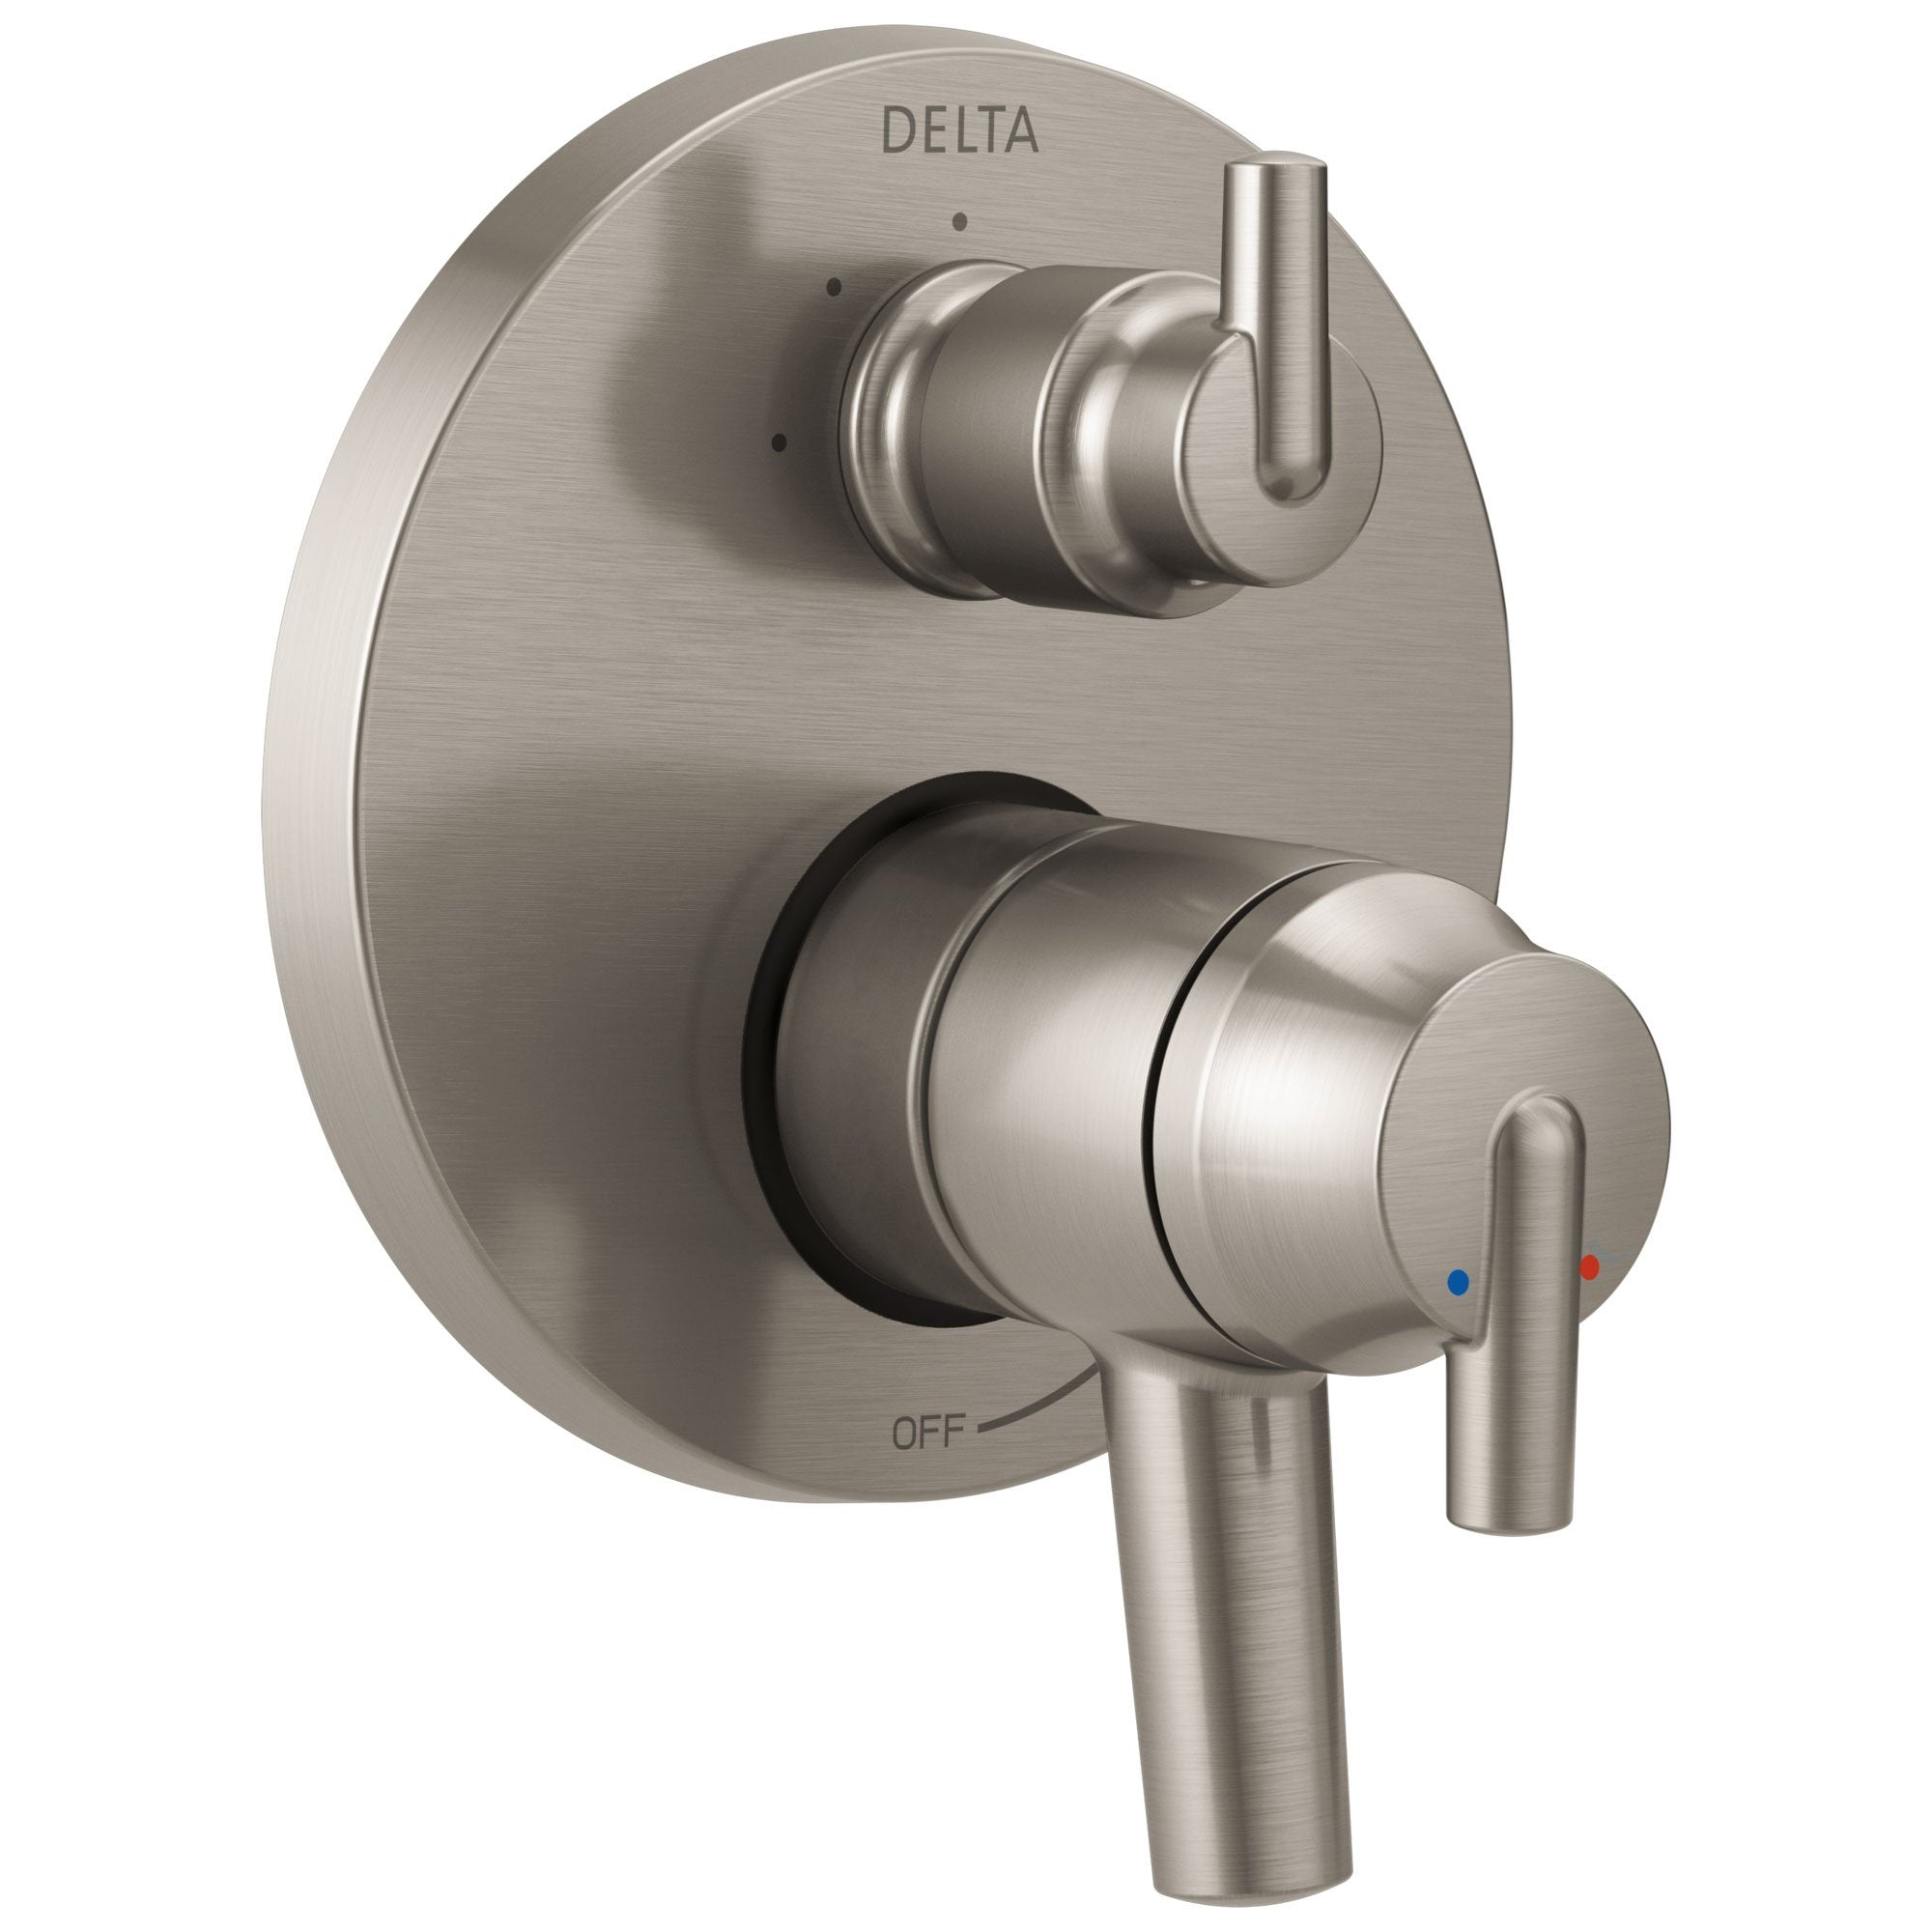 Delta Trinsic Stainless Steel Finish Shower Faucet Control Handle with 3-Setting Integrated Diverter Includes Trim Kit and Rough-in Valve with Stops D2176V